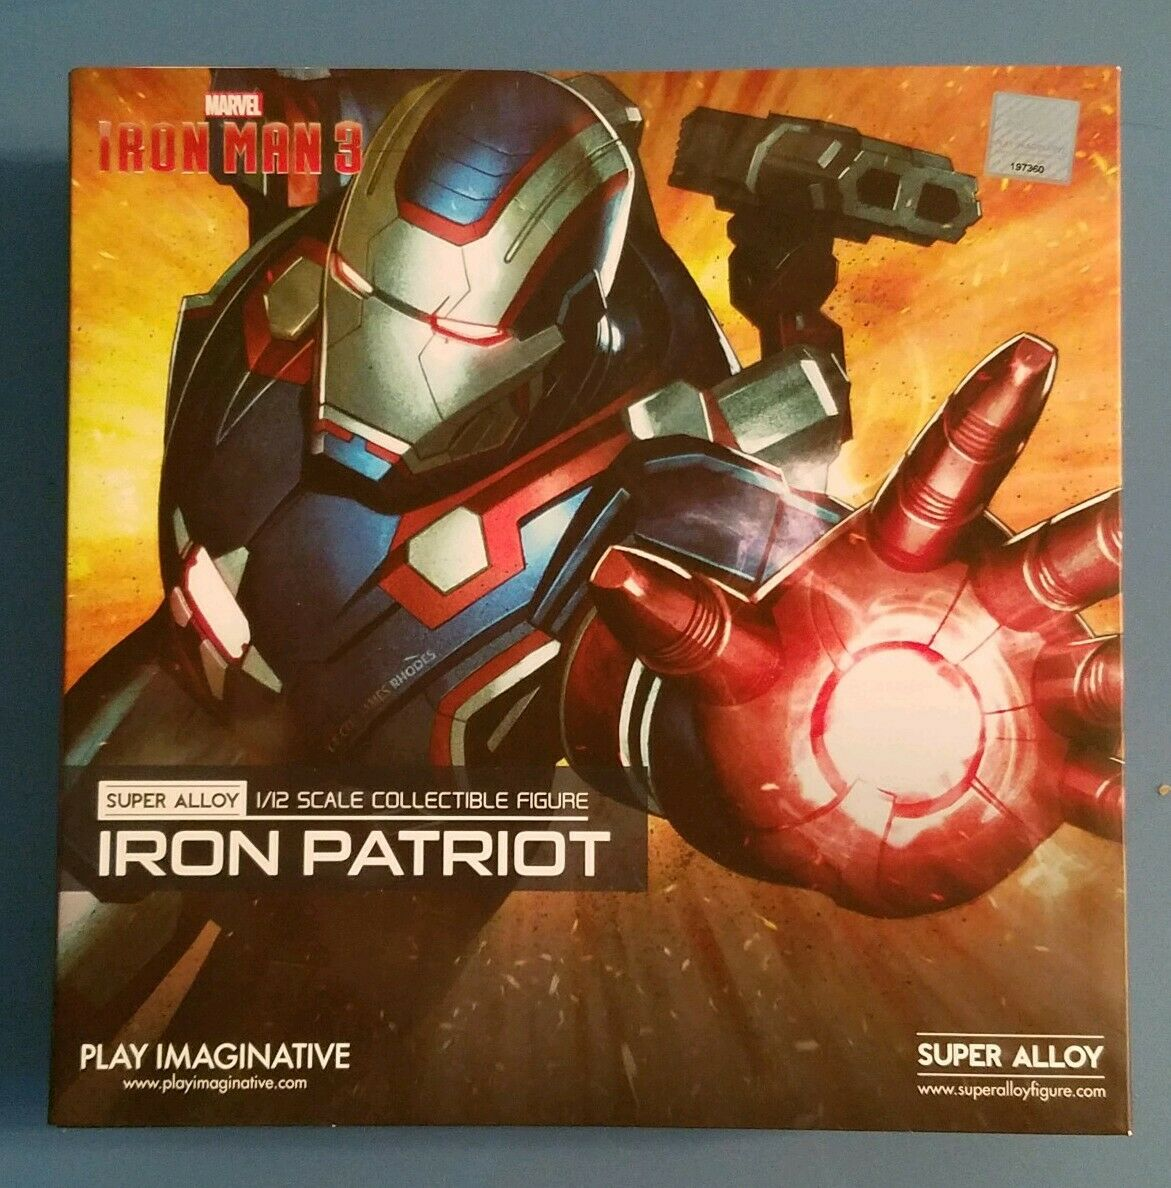 Iron Man 3 Iron Patriot Super Alloy 1 12 Scale Collectible Figure NEW Toy Figure